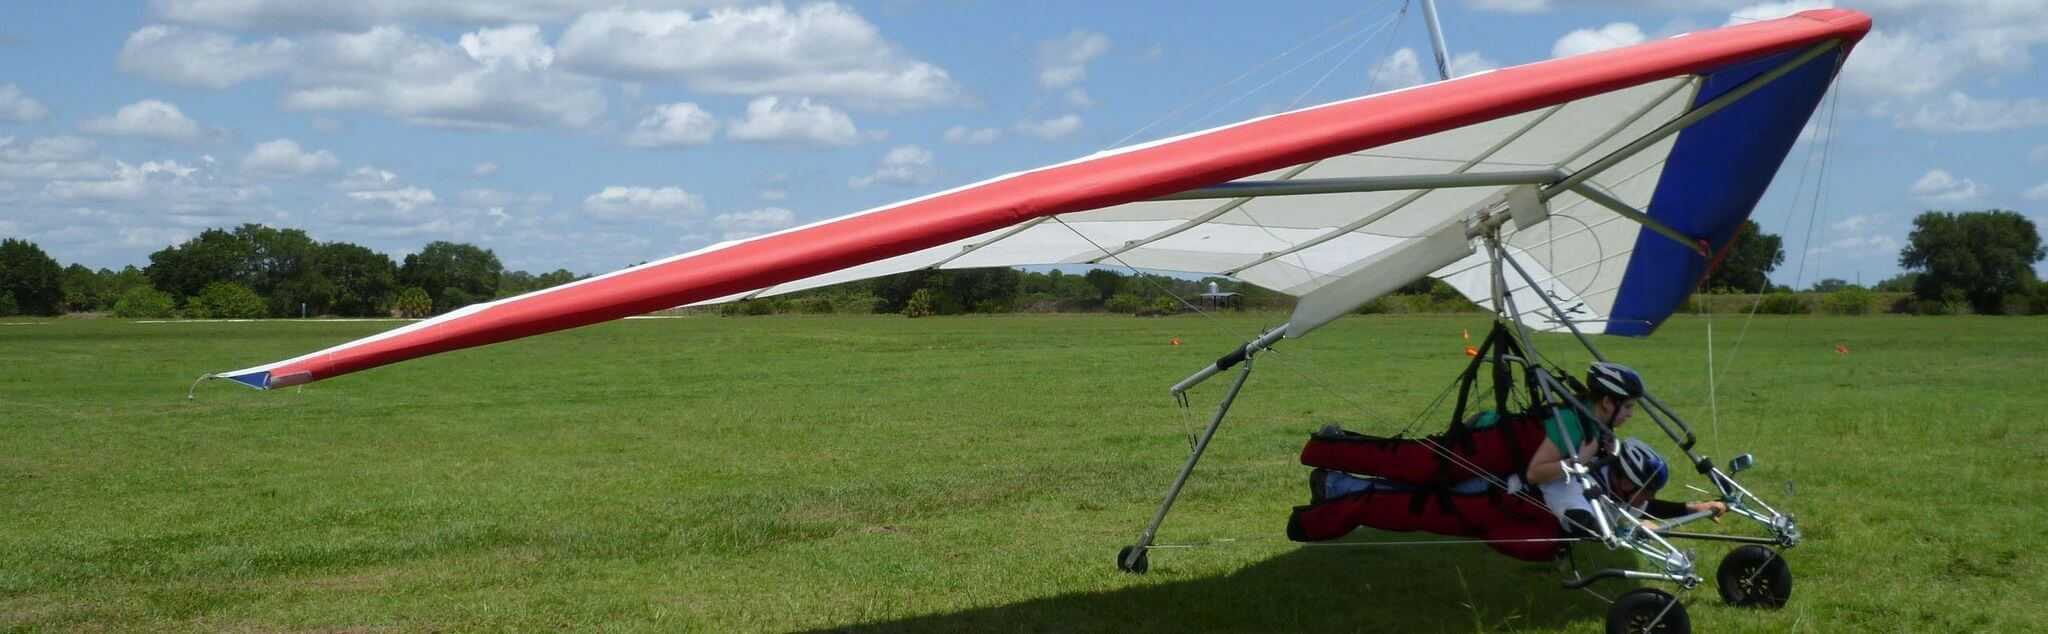 Hang Gliding in Jalisco